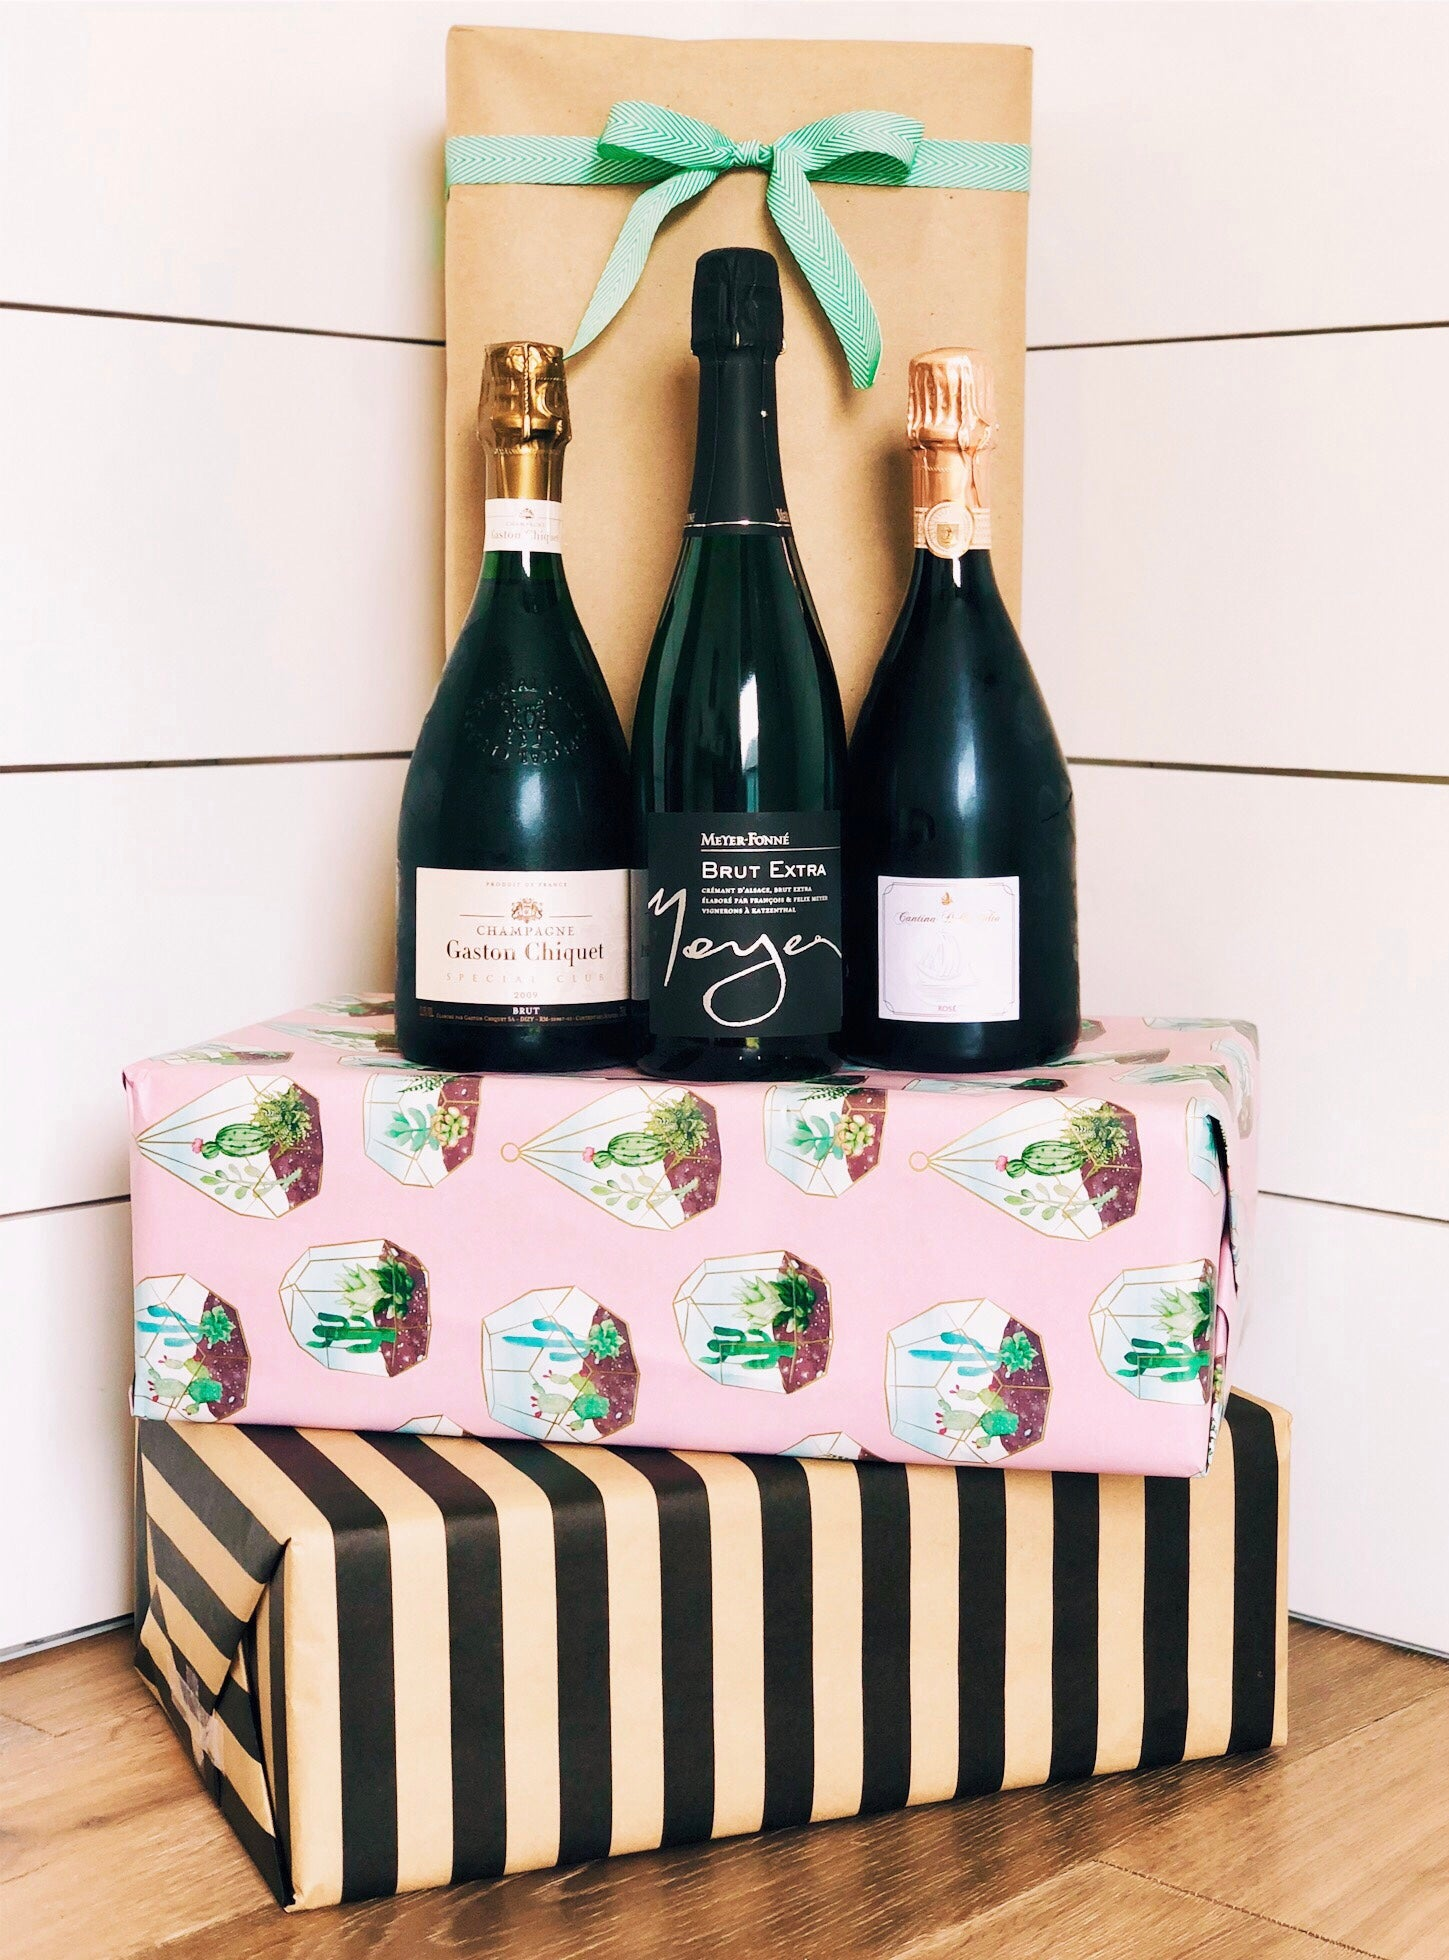 champagne gift box. Unique ideas for corporate gifts and gifts for her